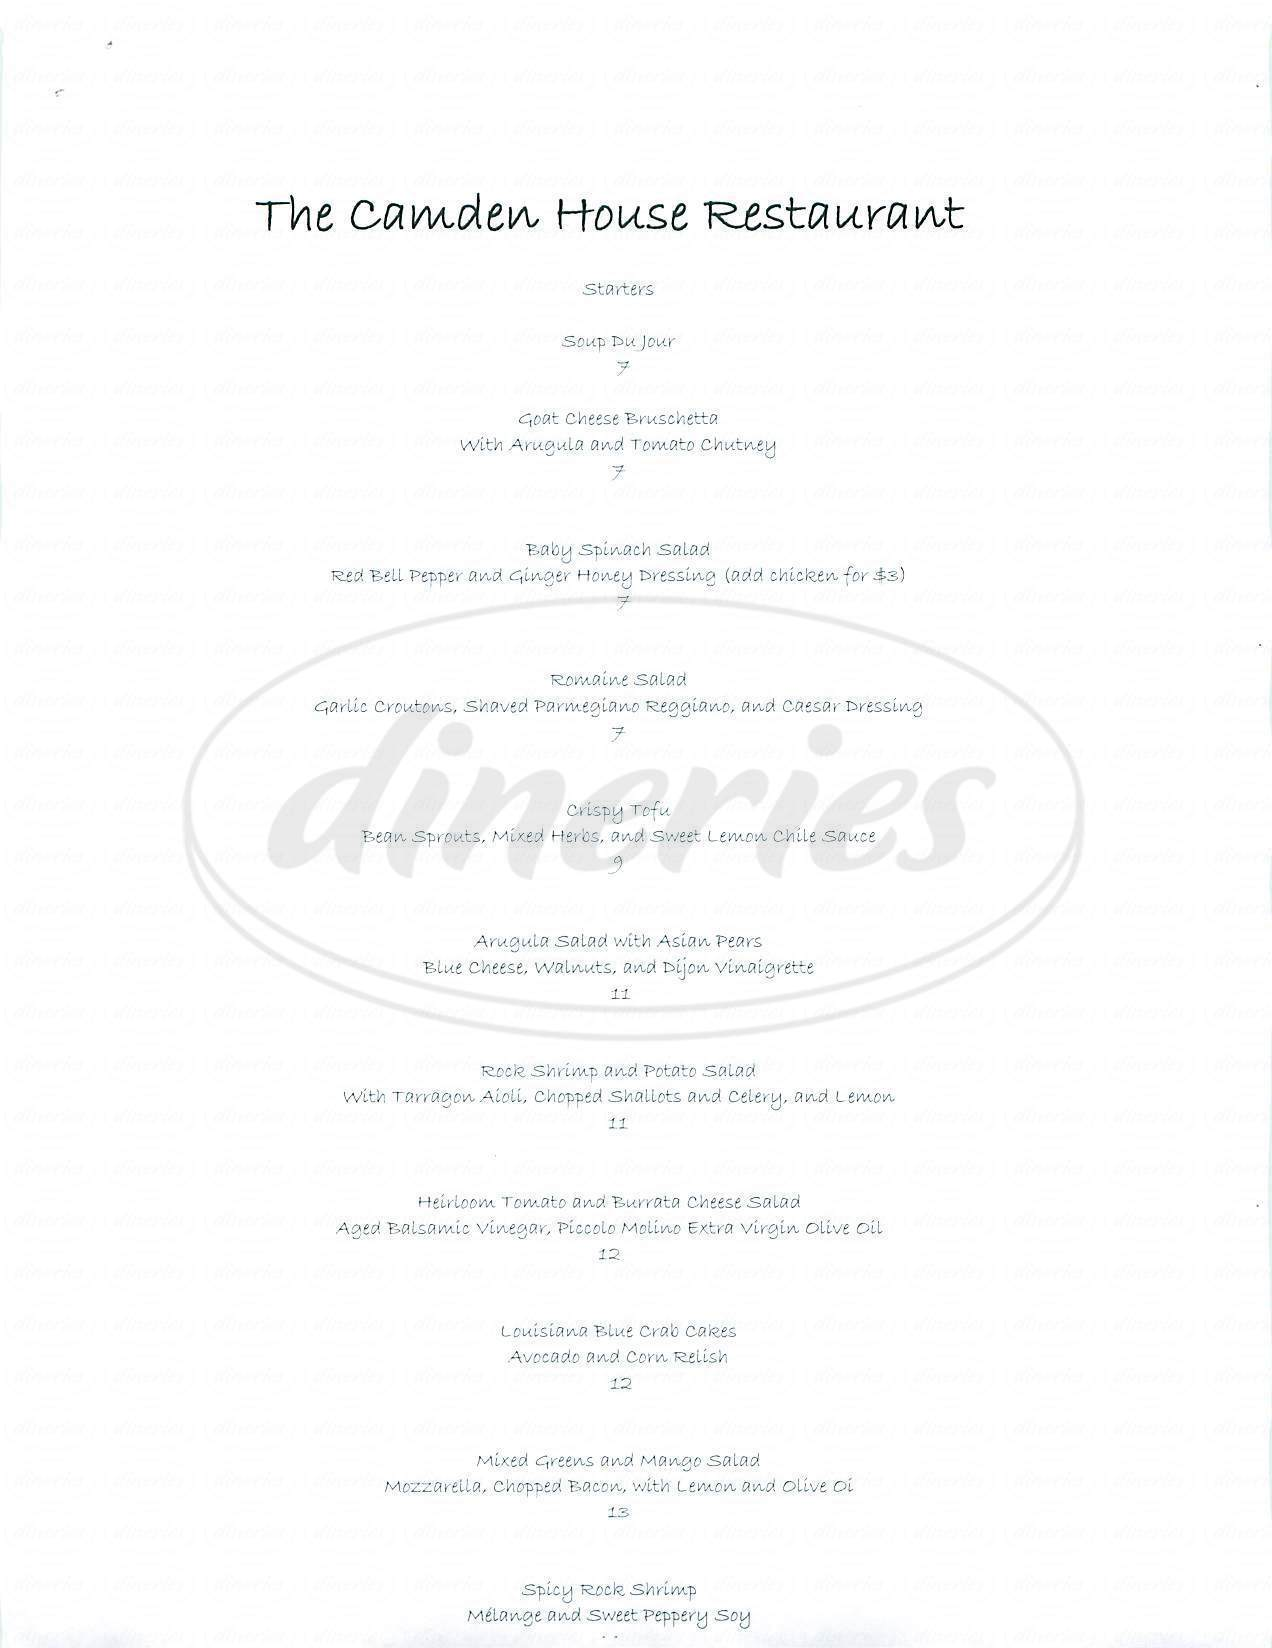 menu for The Camden House